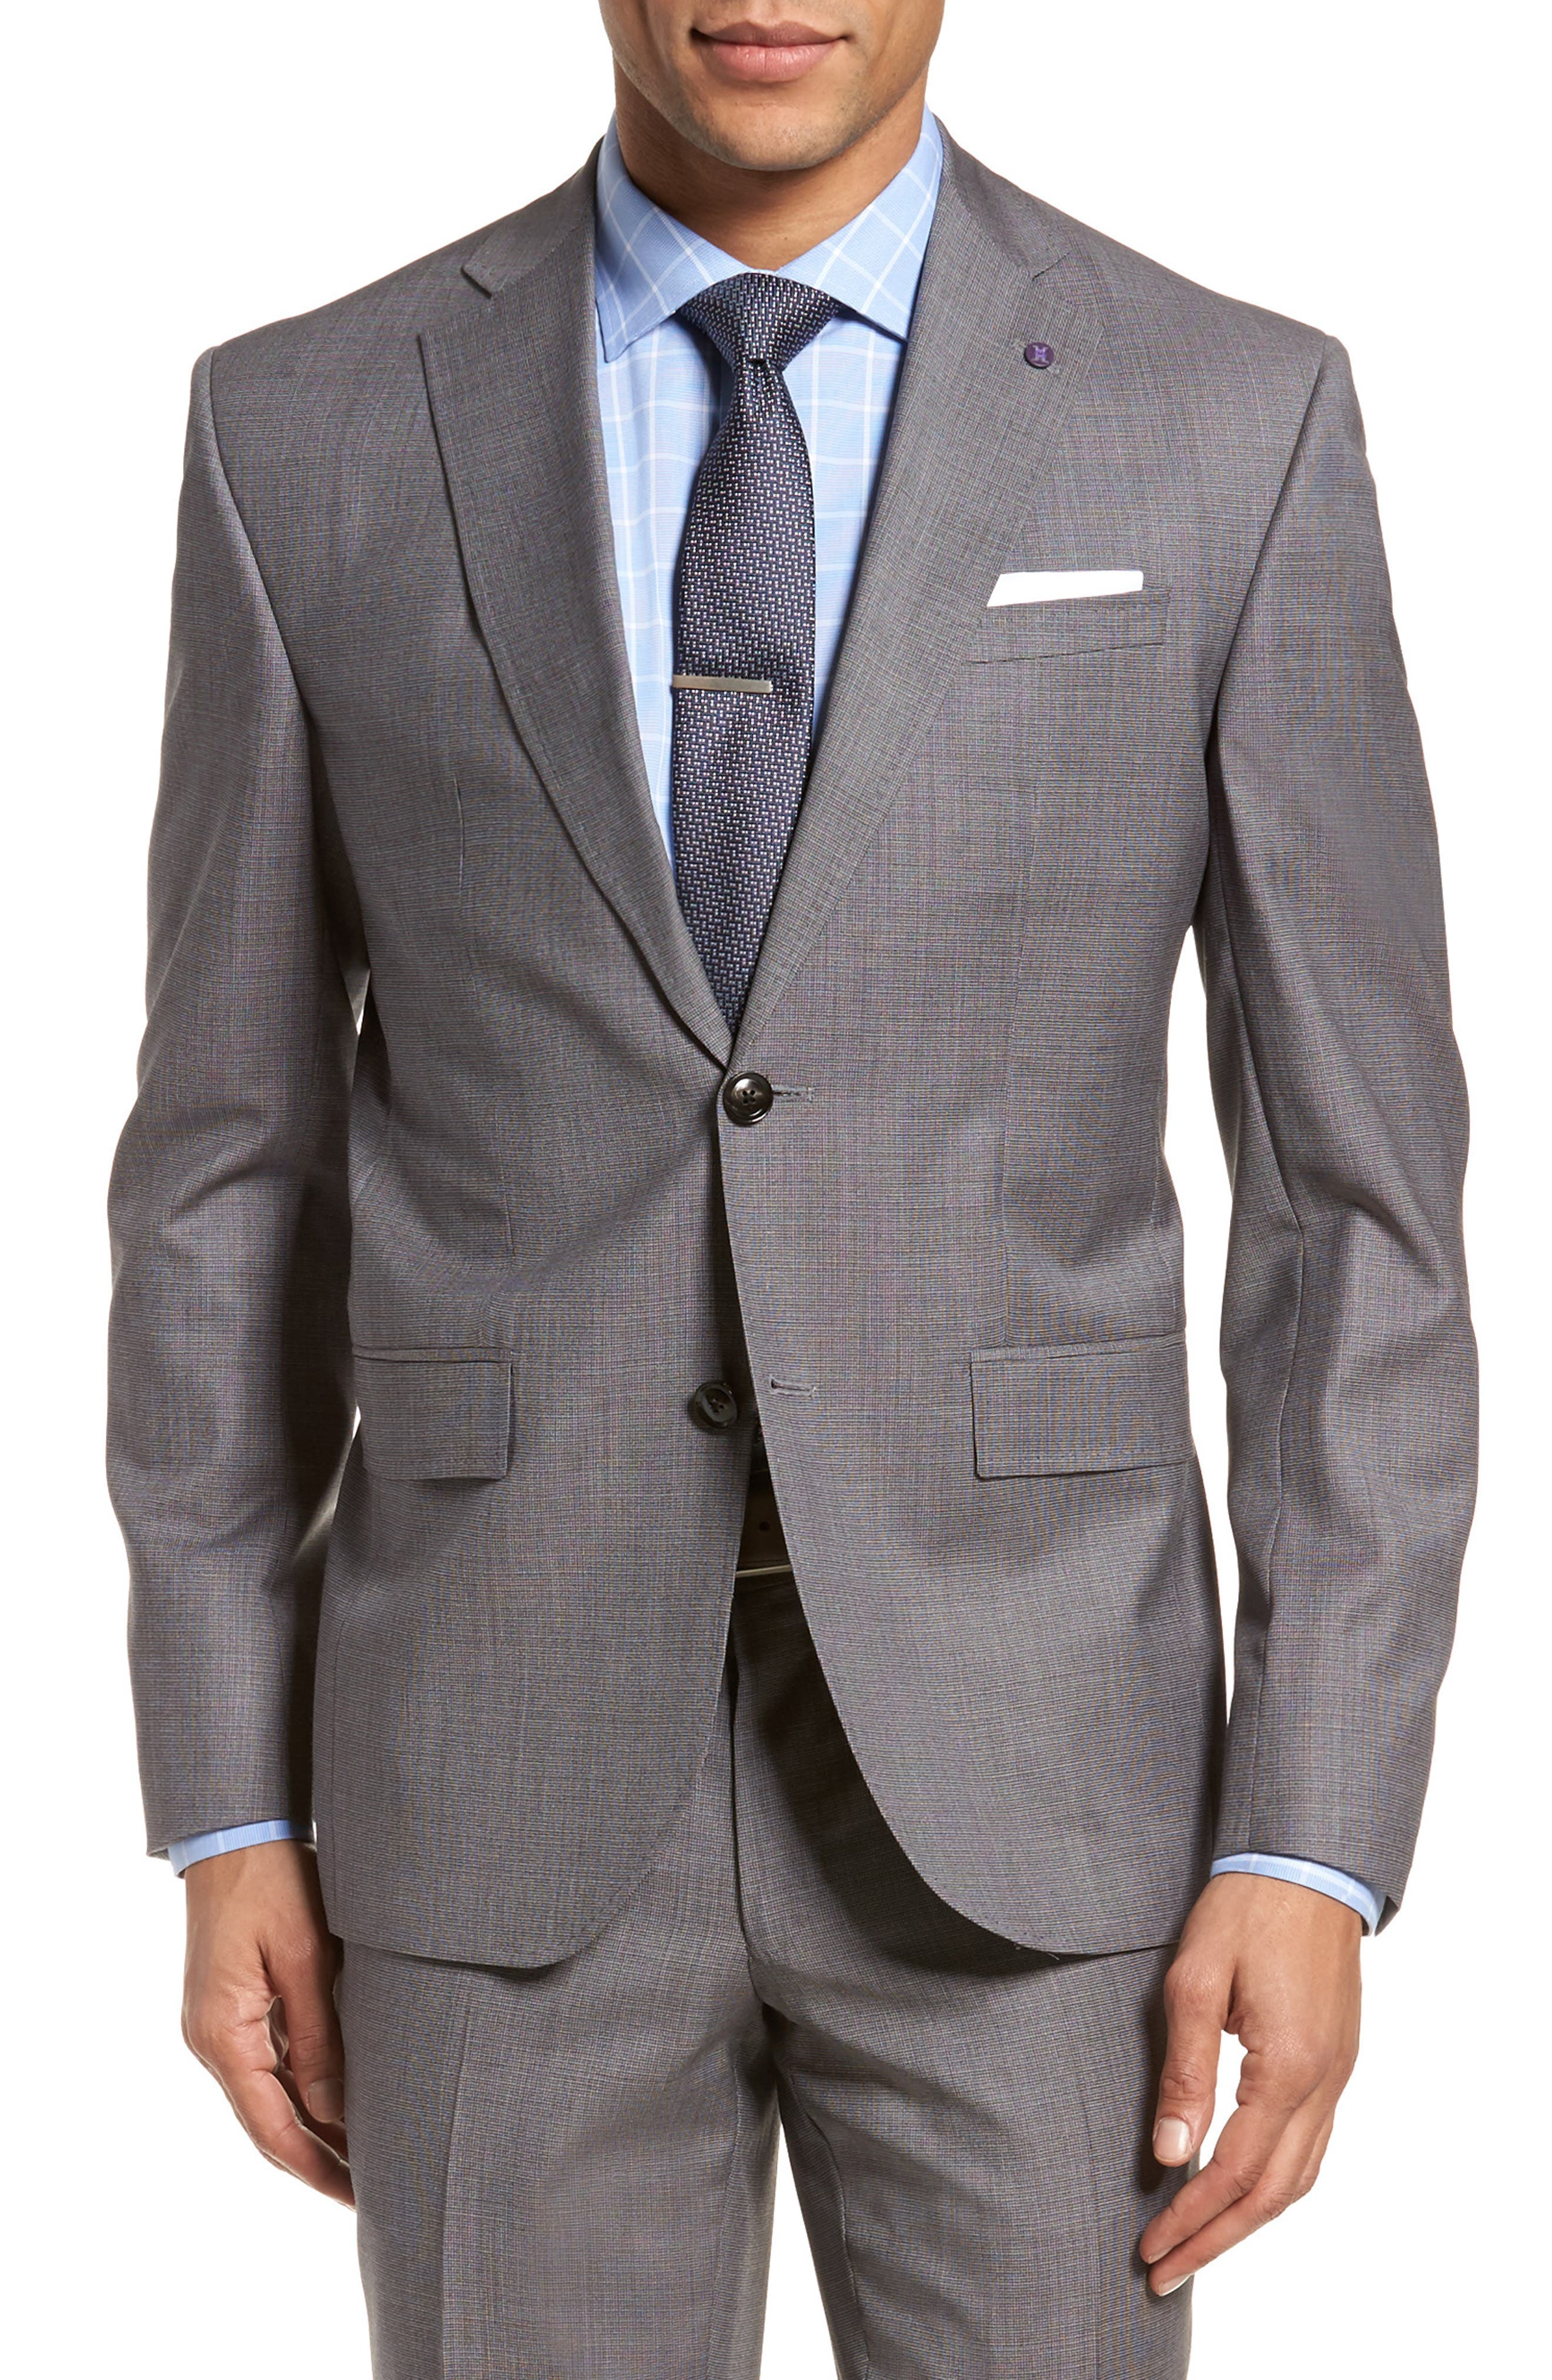 Roger Extra Slim Fit Solid Wool Suit,                             Alternate thumbnail 5, color,